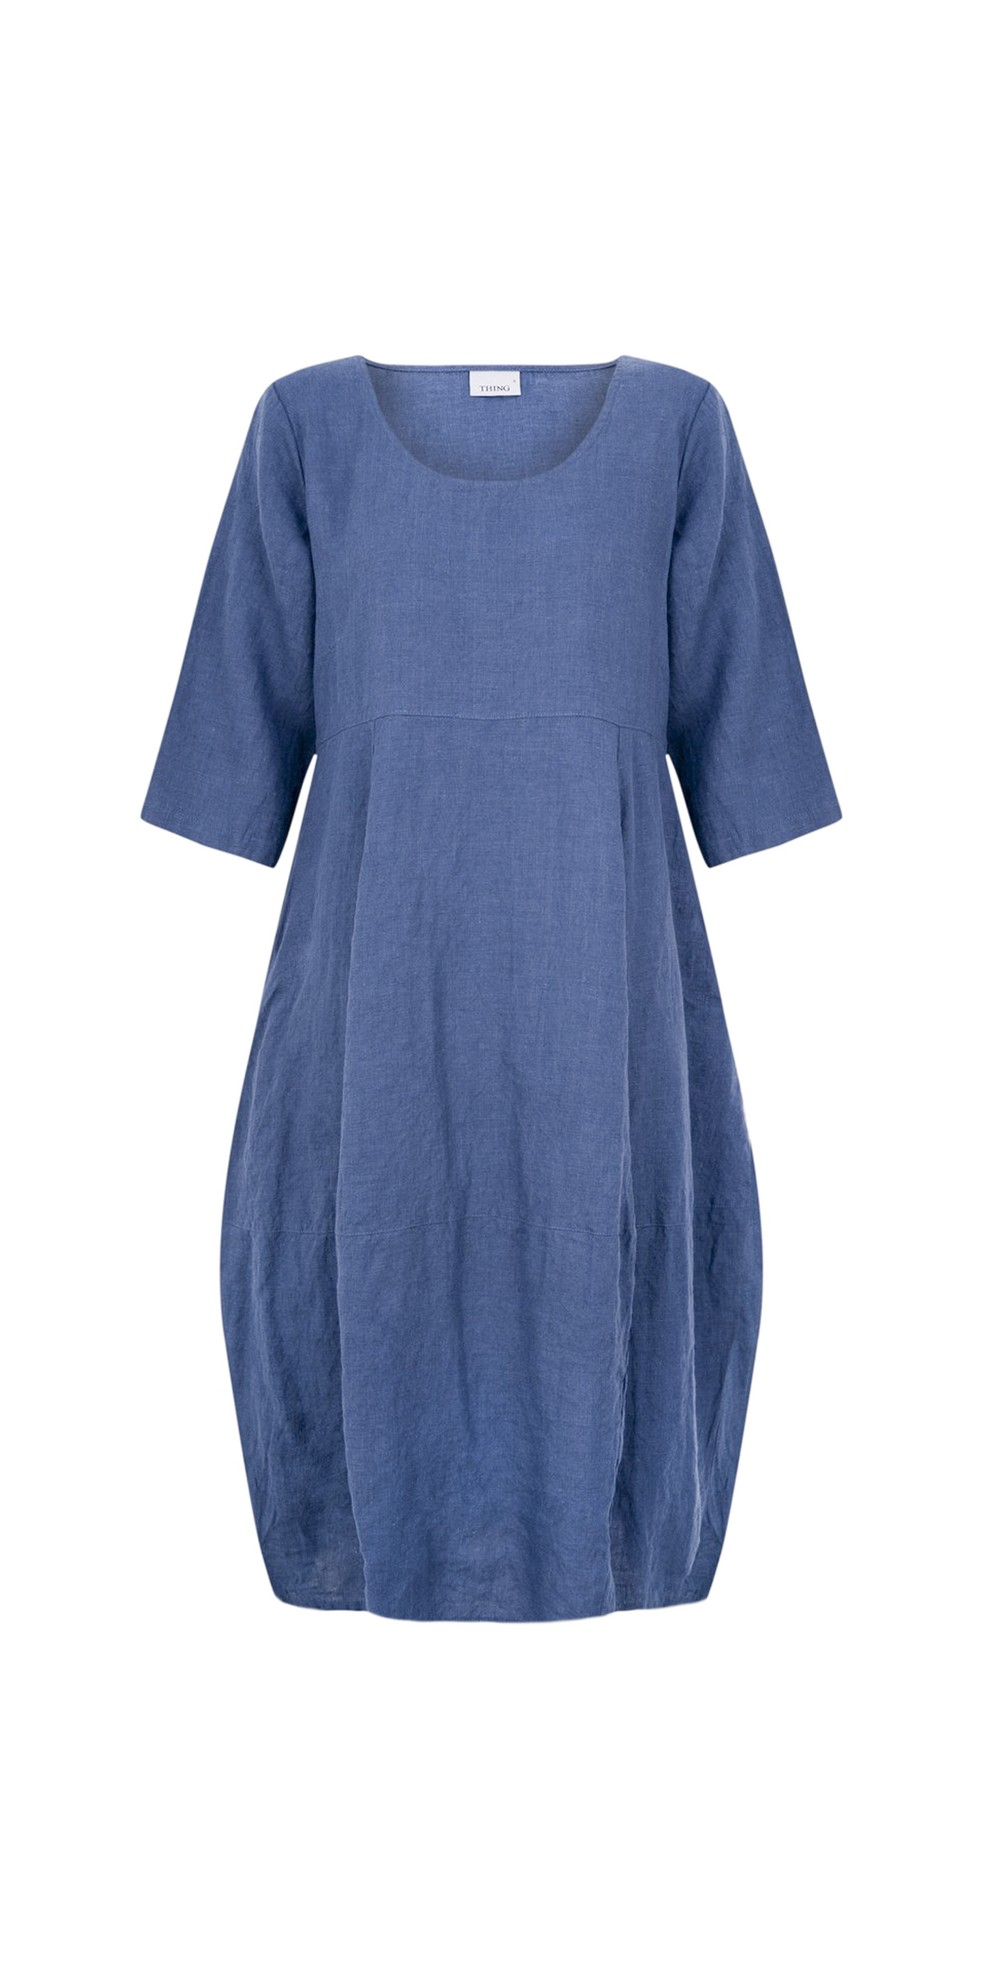 Freya 3/4 Sleeve Linen Dress main image